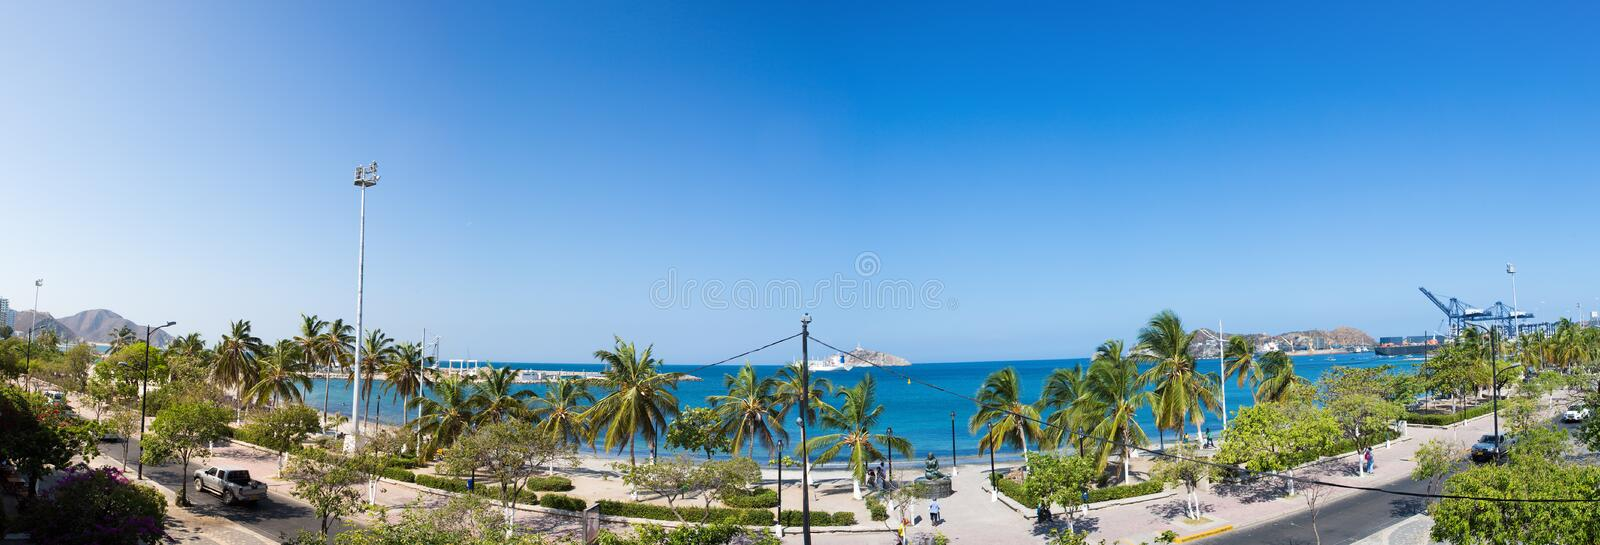 Panorama of the bay of Santa Marta, Colombia. SANTA MARTA, COLOMBIA, JANUARY 23: Panorama of the bay of Santa Marta with the port in the background, Colombia royalty free stock image